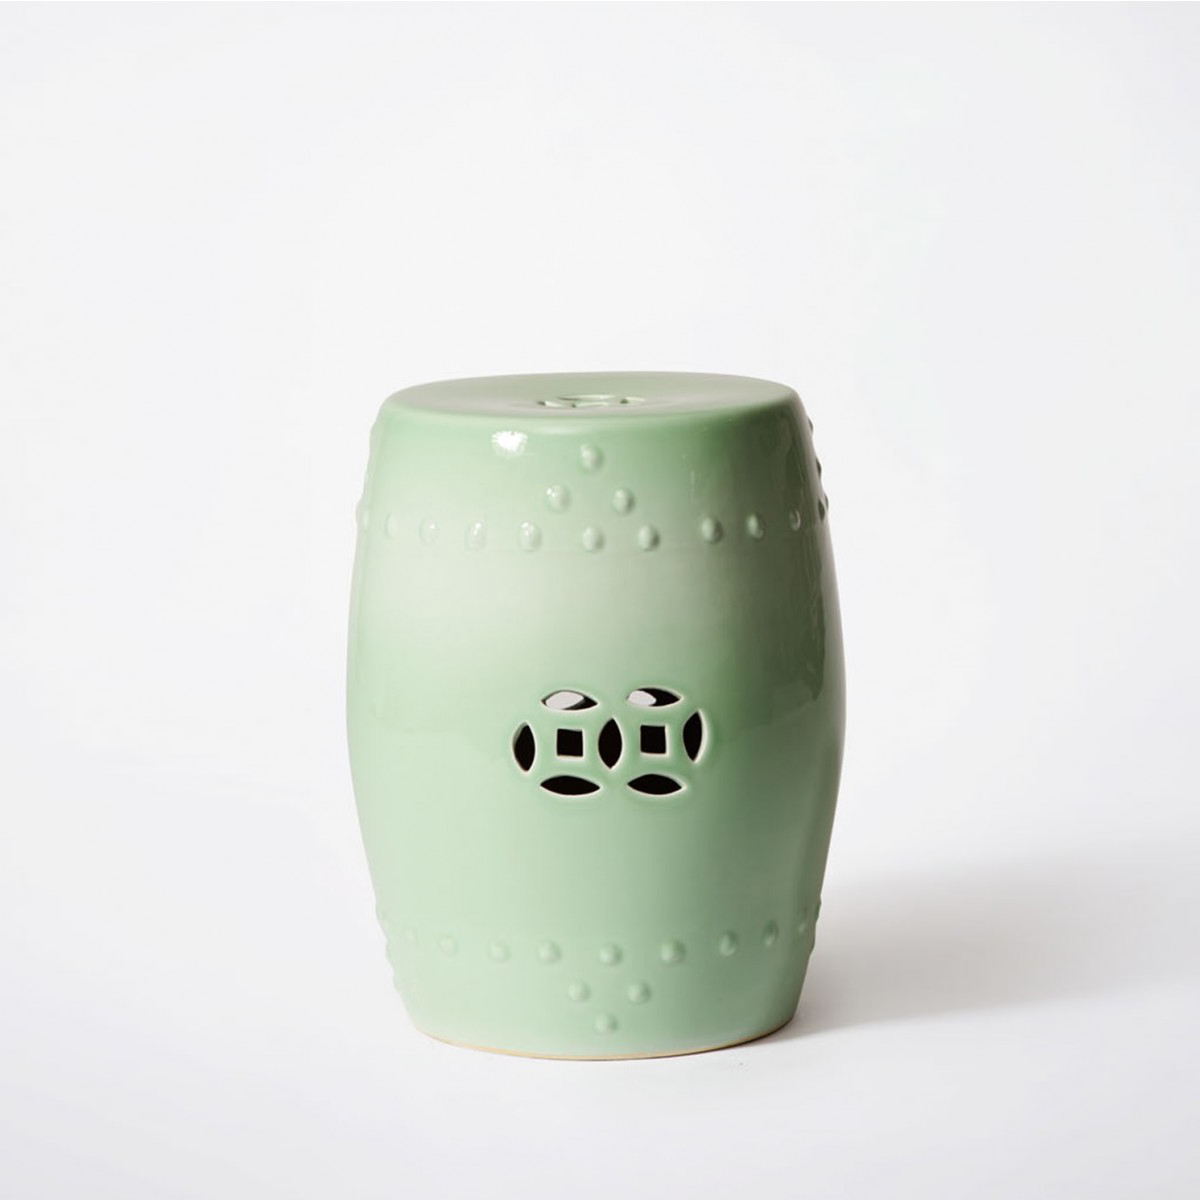 Celadon Garden Stool & Bowerbird Homeu0027s china Celadon Garden stool is a multi-purpose ... islam-shia.org